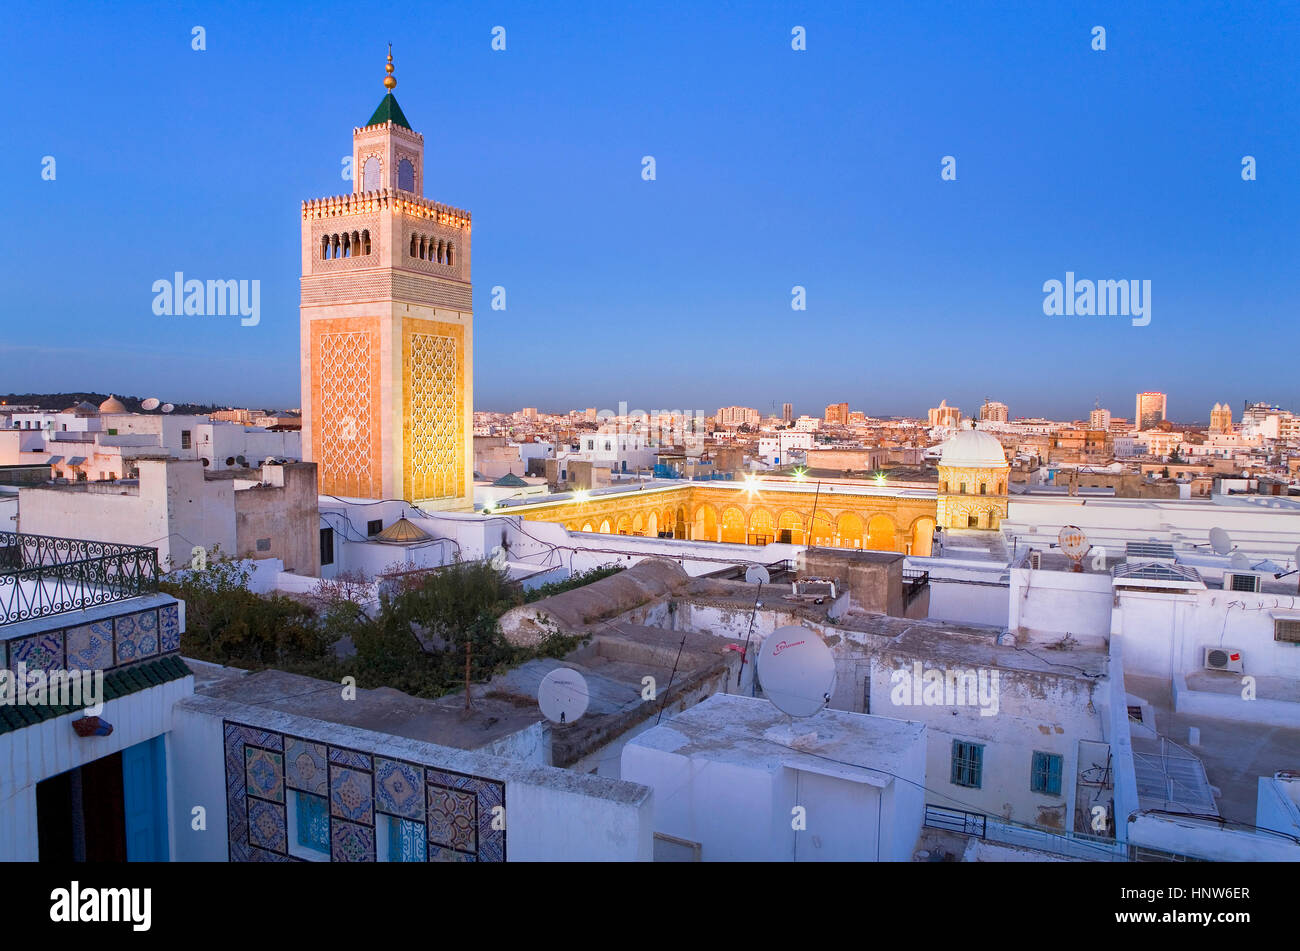 Tunisia: City of Tunis. Overview of tunis with Ez- Zitouna Mosque (Great Mosque) - Stock Image